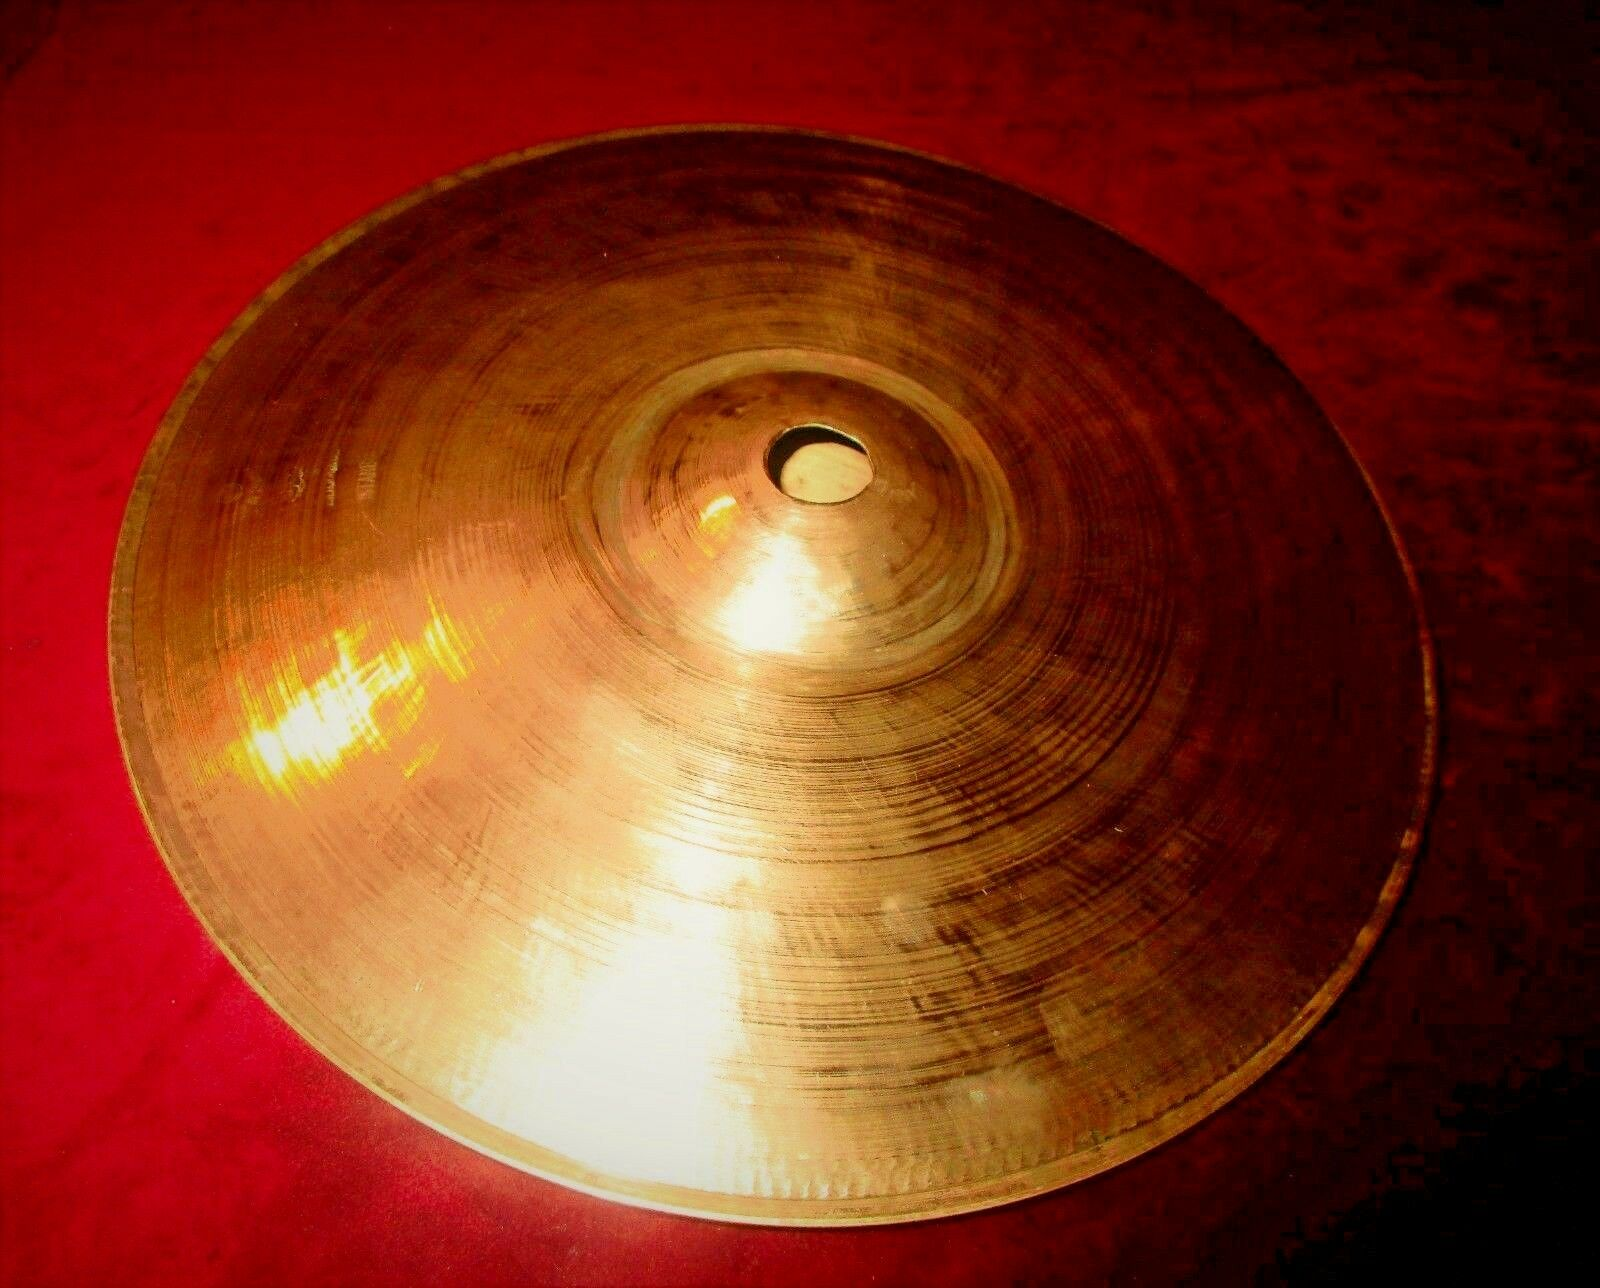 AMAZING VINTAGE ZILDJIAN K HI - HAT CYMBALS ISTANBUL TURKEY FROM 60s EXCELLENT